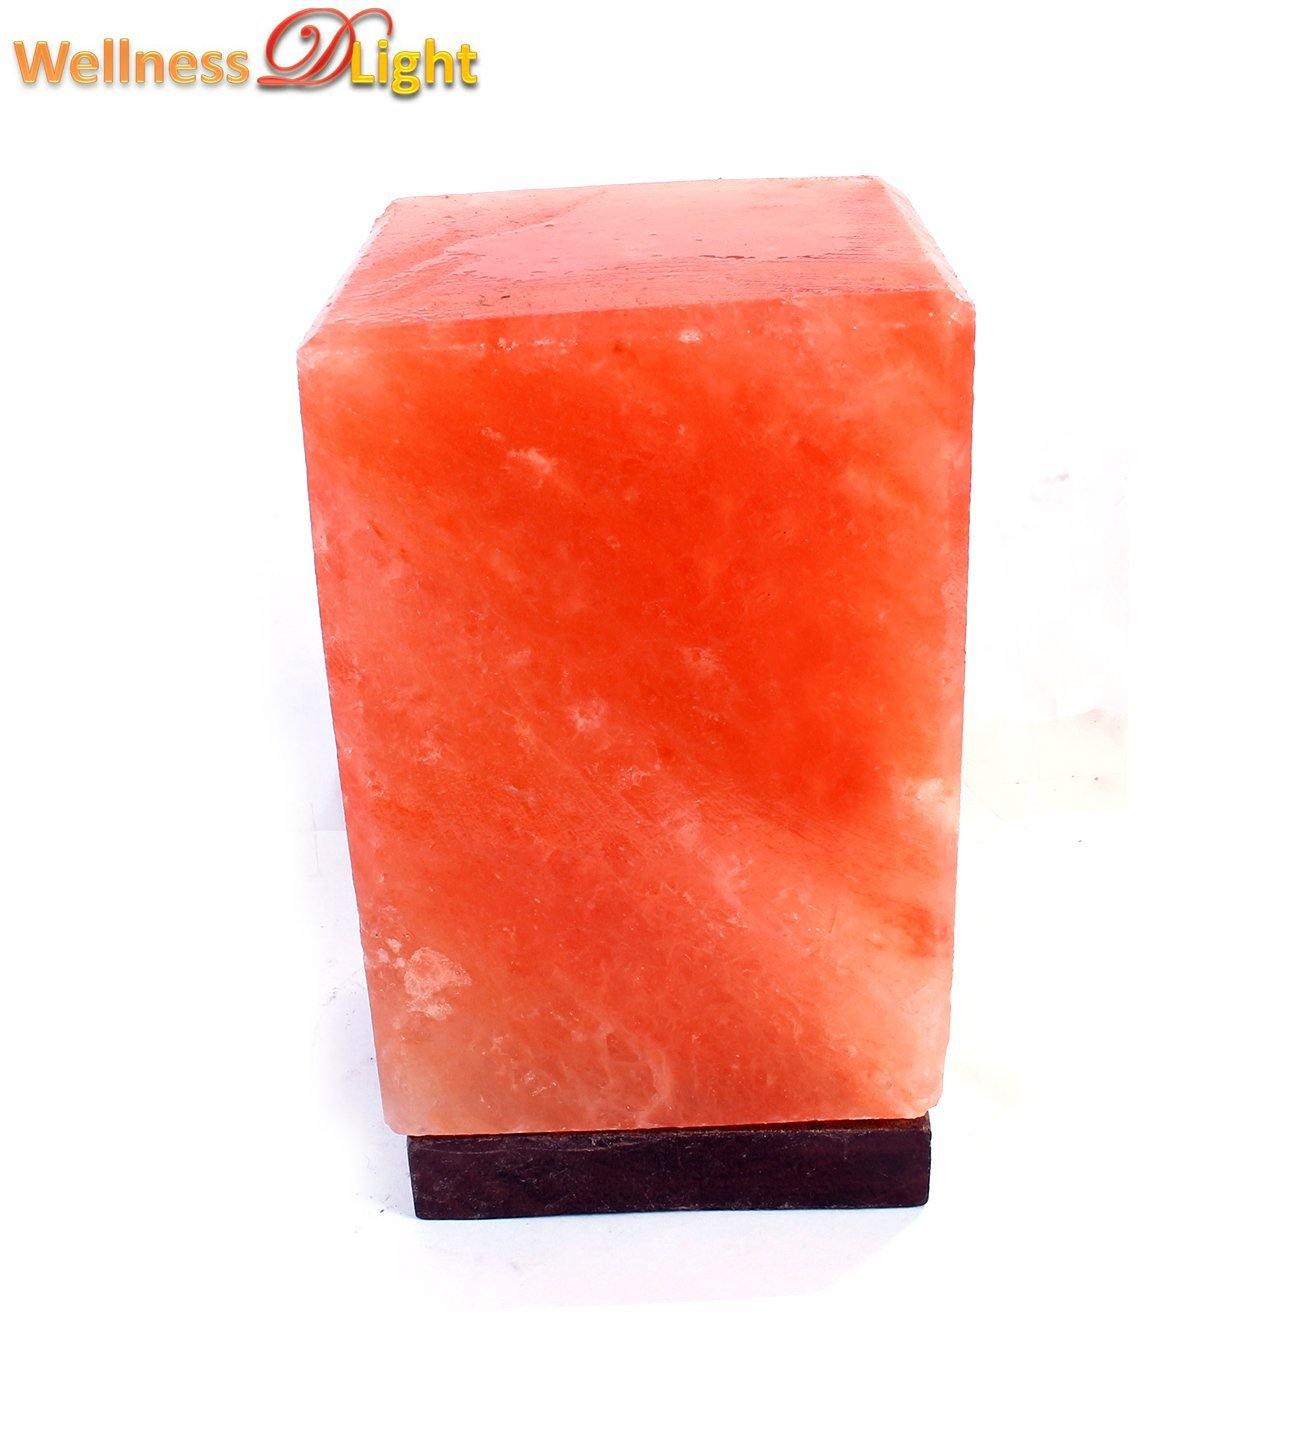 "WDL ROCK SALT HAND CRAFTED CUBE SALT LAMP 6"" WITH CORD, BULB"